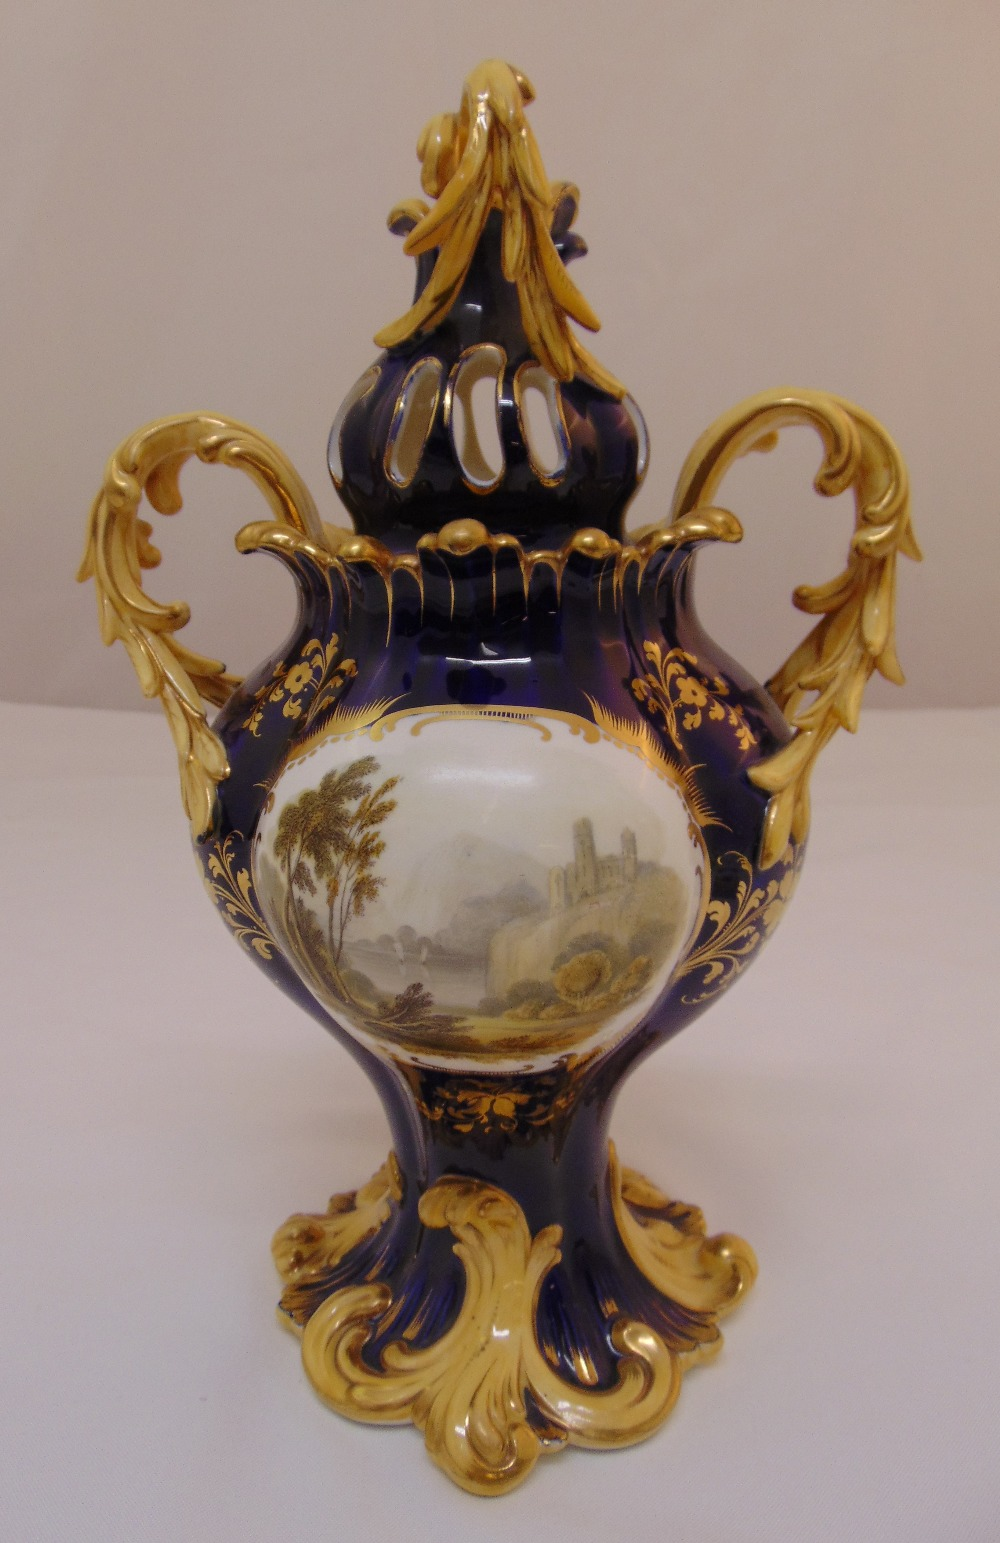 A 19th century Coalport pot pourri vase and cover decorated with panels of floral sprays, a romantic - Image 2 of 2